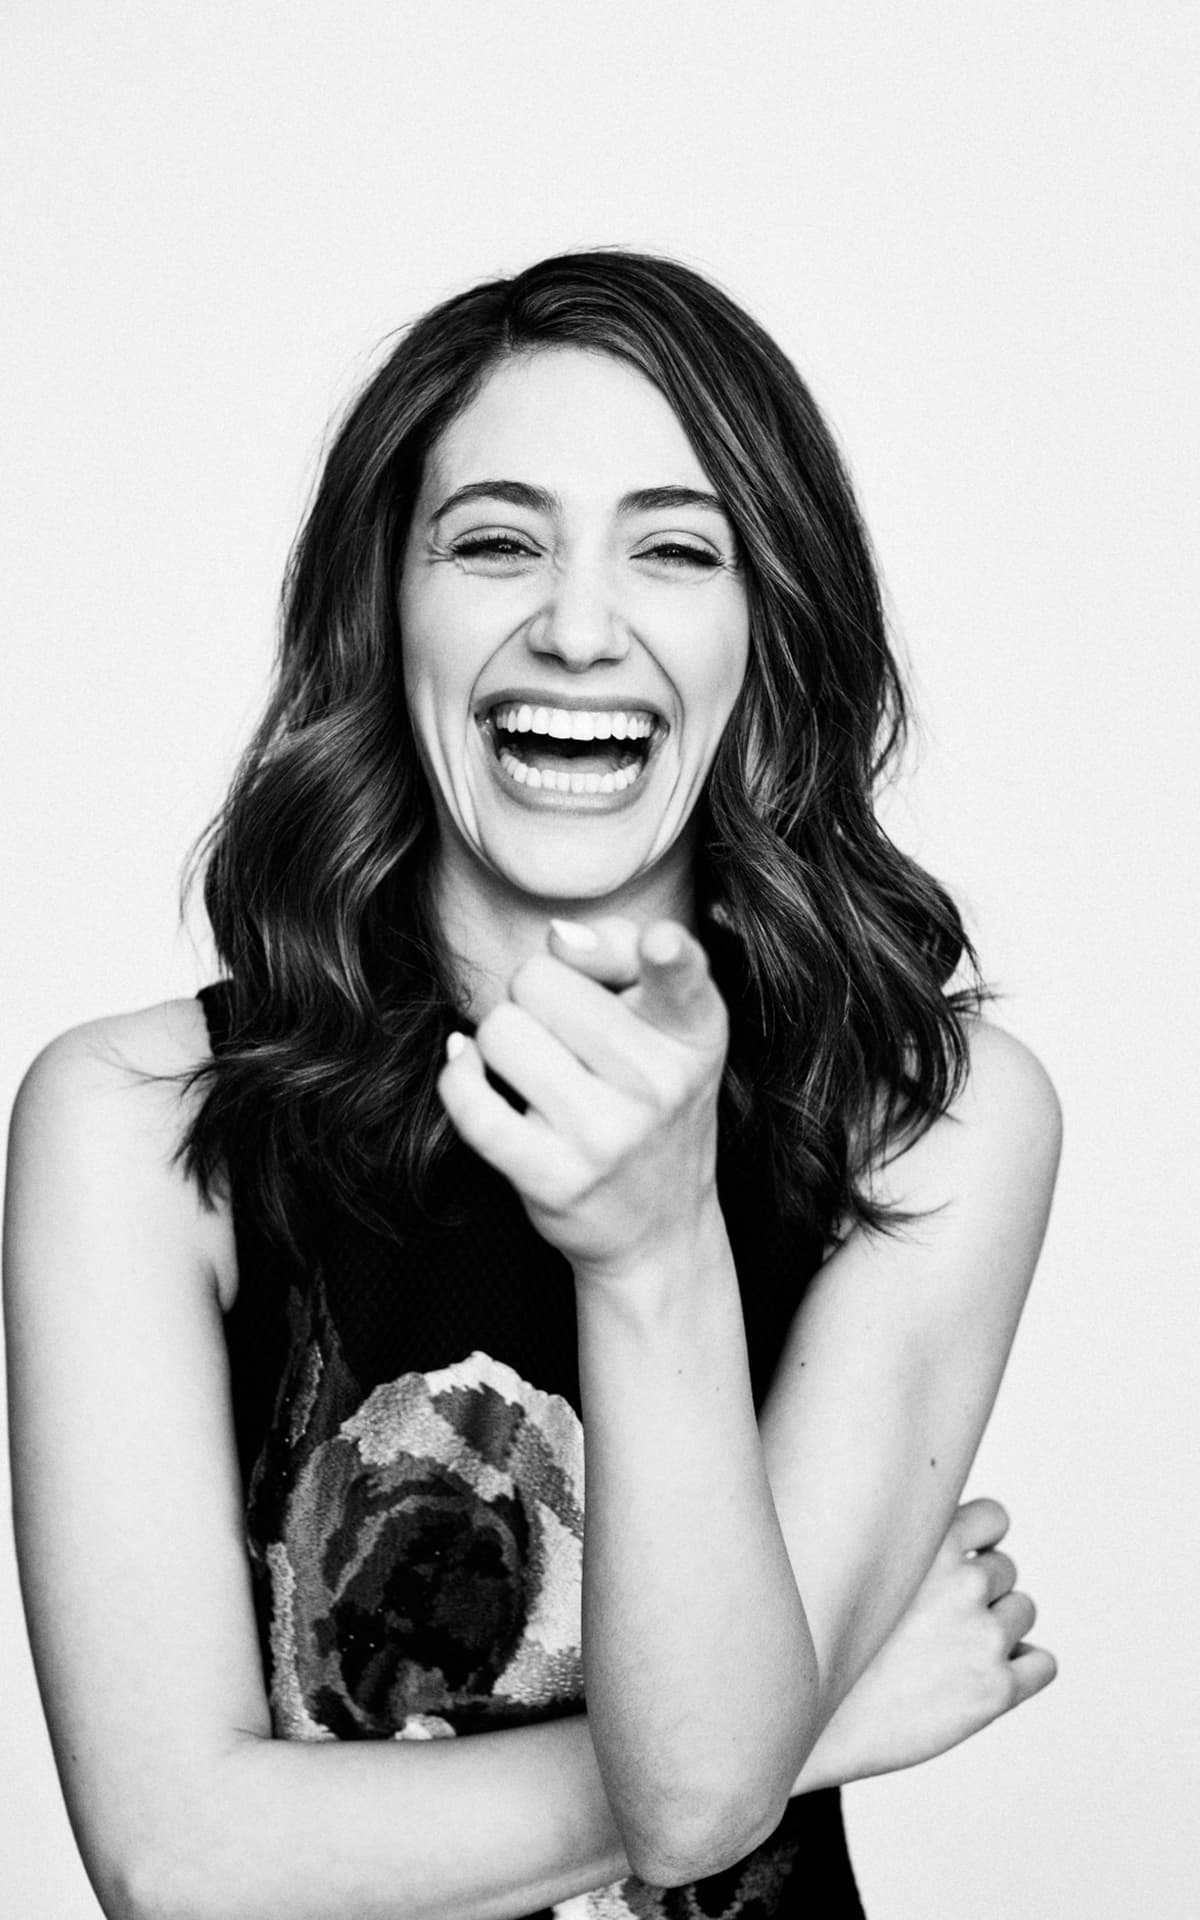 face Emmy Rossum for iPhone